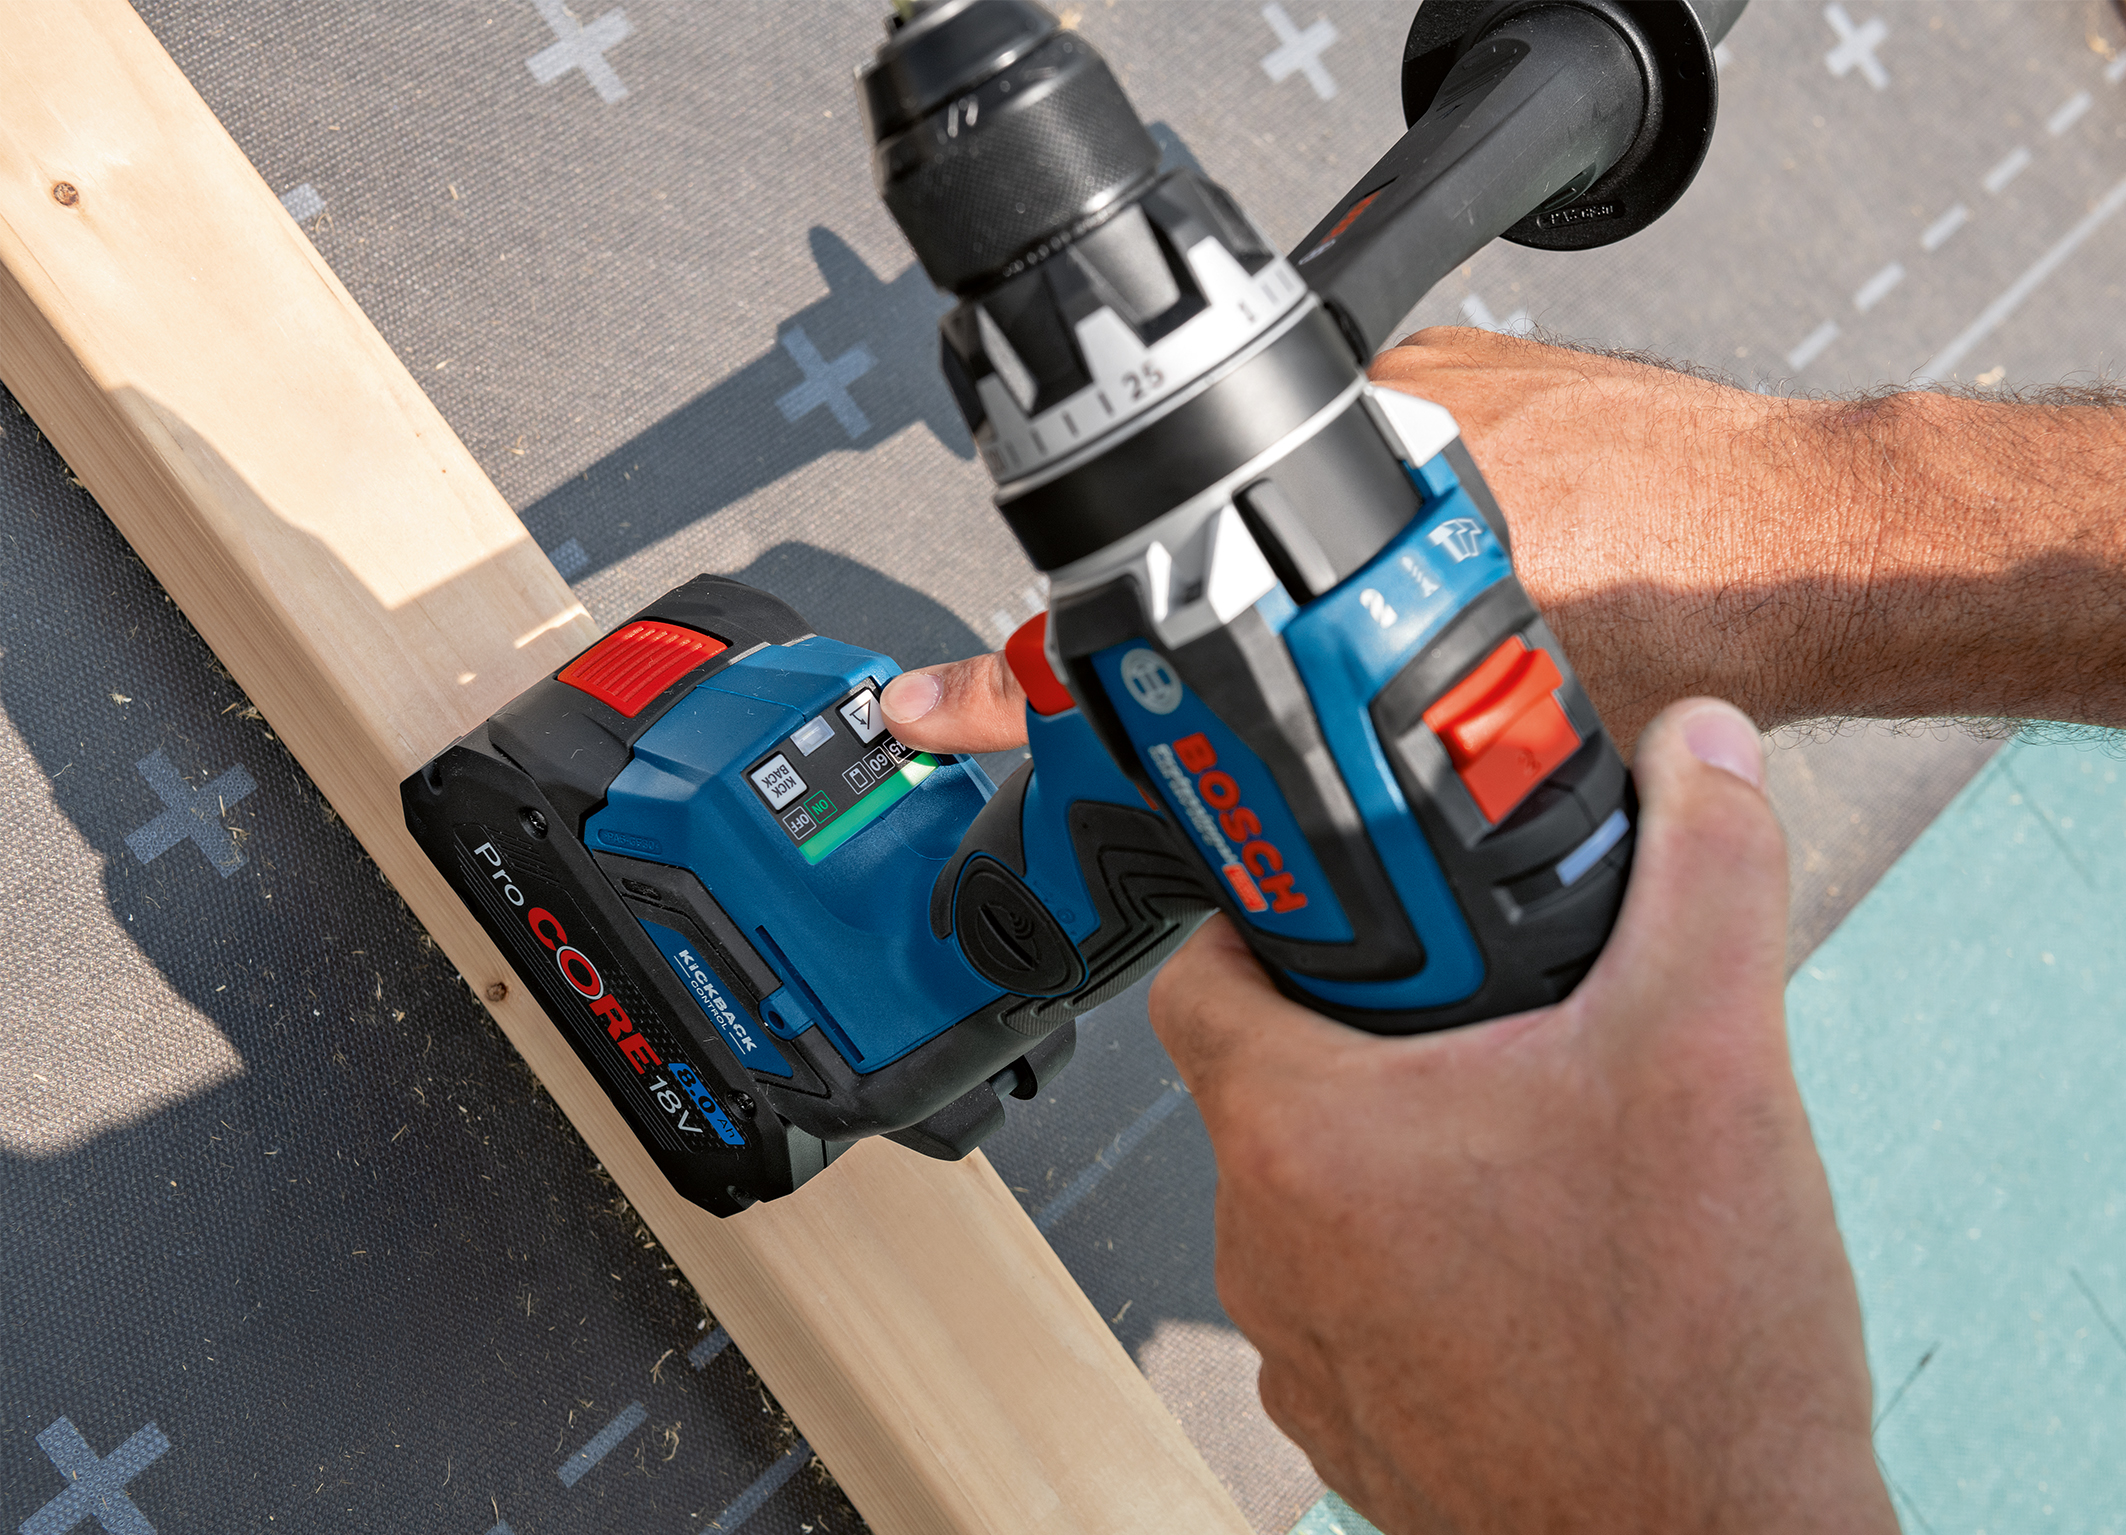 More control than ever due to user interface and connectivity: First Biturbo drill drivers from Bosch for pros